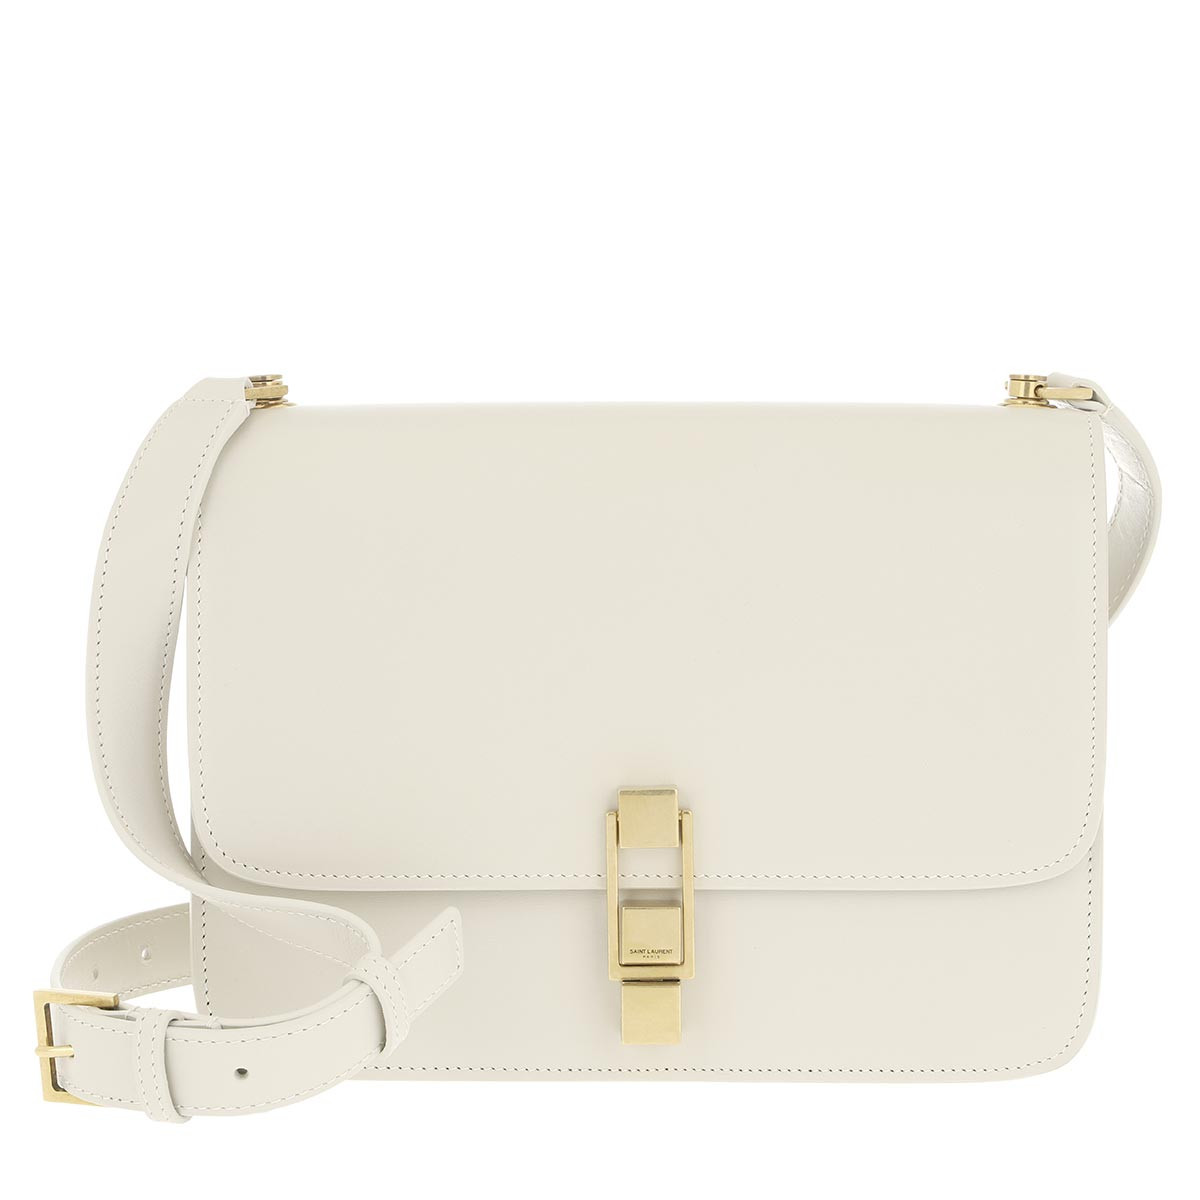 Saint Laurent Umhängetasche - Carre Satchel Smooth Leather Blanc Vintage - in weiß - für Damen